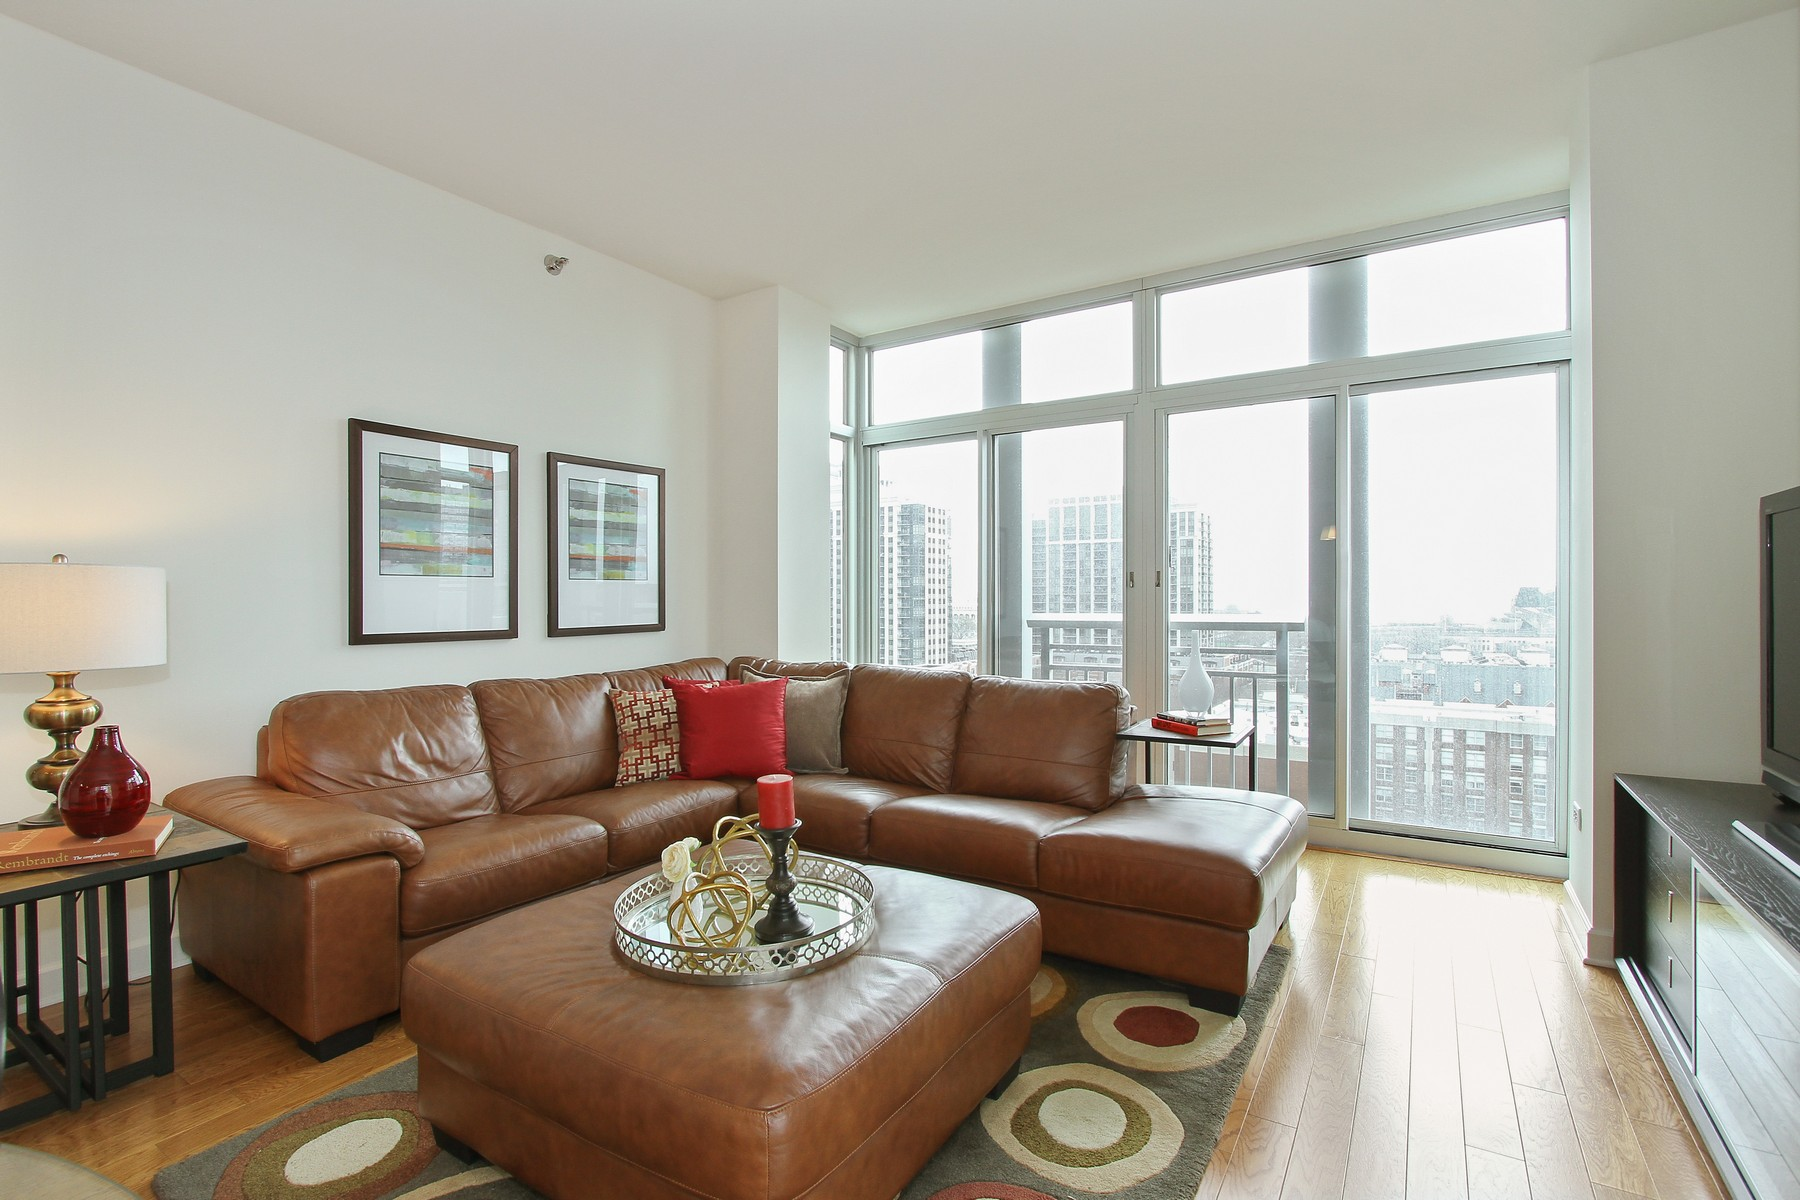 Condominium for Sale at Luxury Two Bedroom 1400 S Michigan Avenue Unit 1004 Near South Side, Chicago, Illinois, 60605 United States